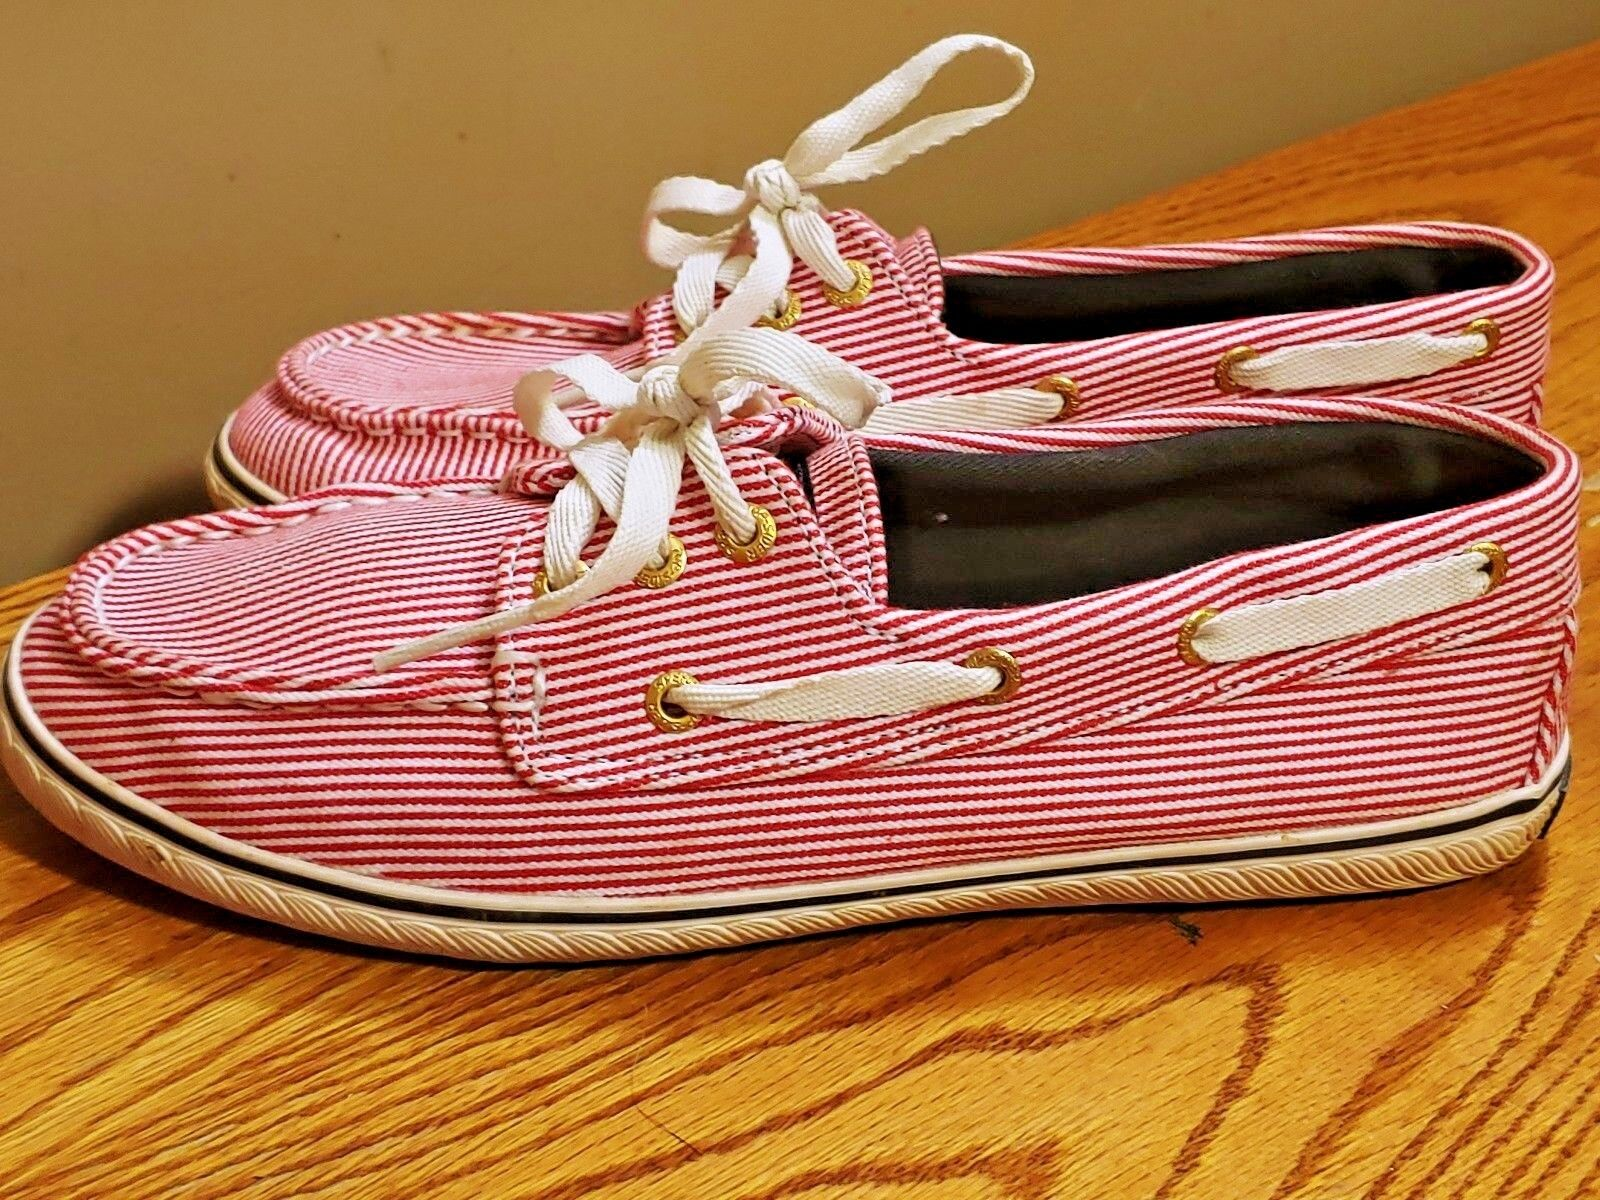 SPERRY TOP SIDER Candy Stripe Red Boat Deck Loafers Womens shoes Sz 6.5 b4